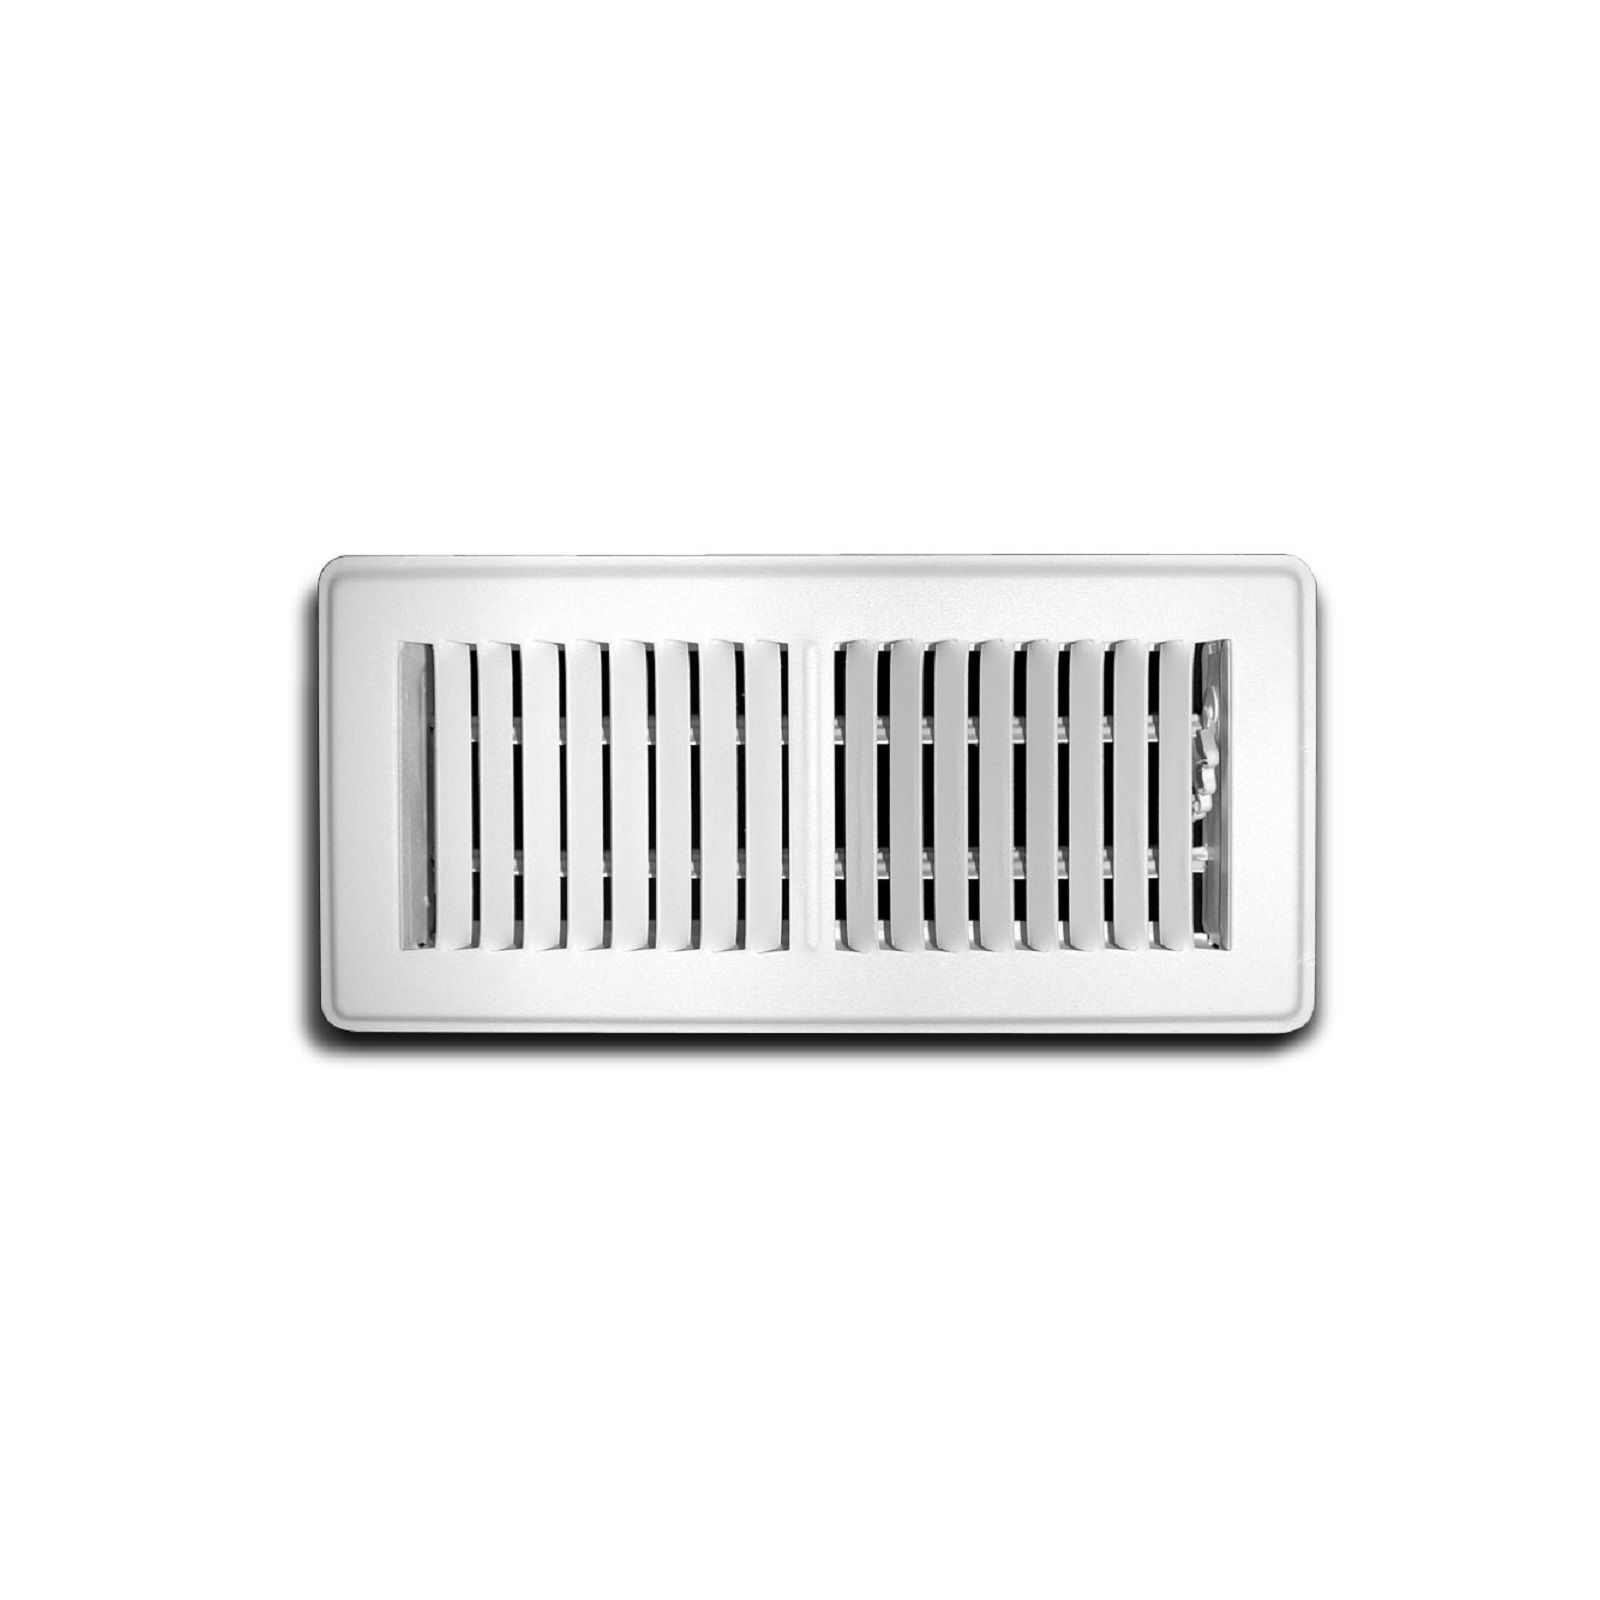 "TRUaire 150MW 02X14 - Steel Stamped Face Floor Diffuser, White, 02"" X 14"""